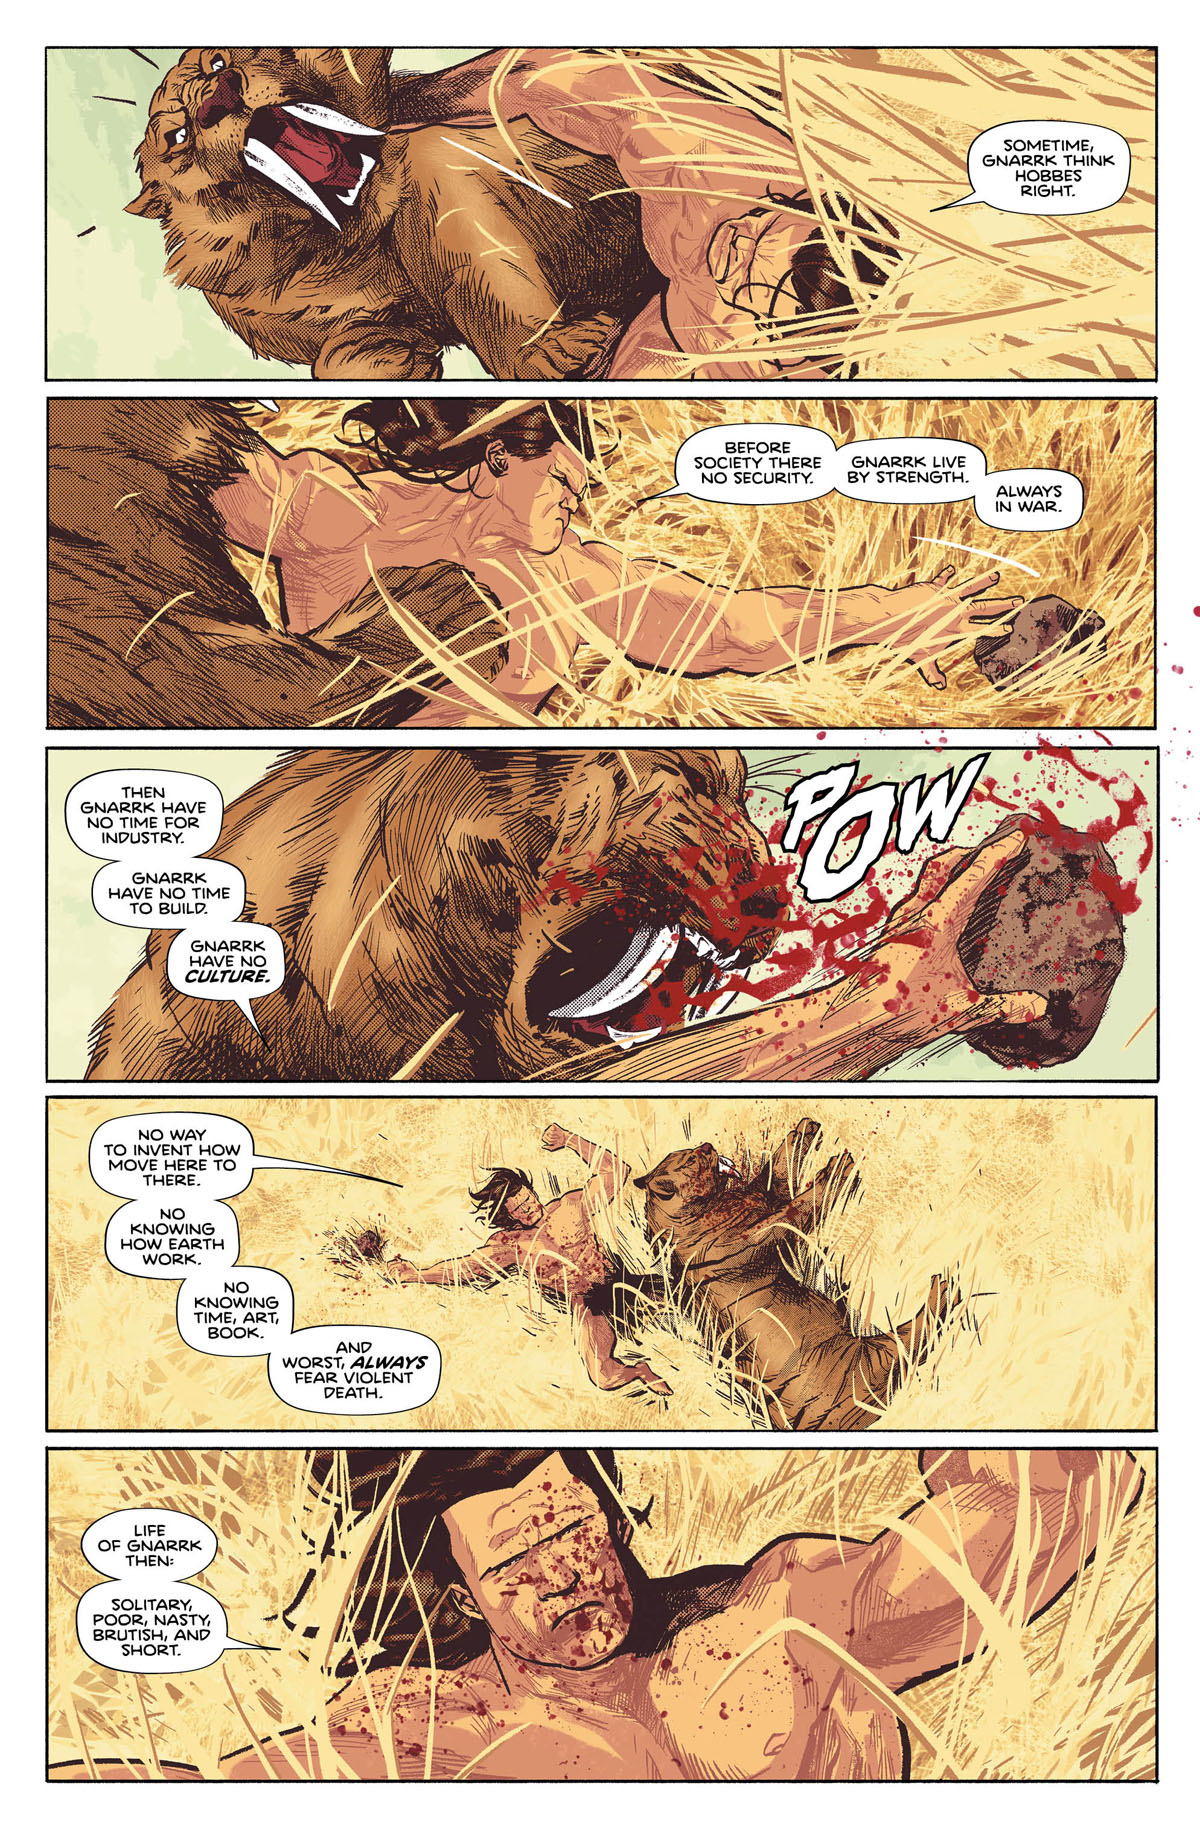 Heroes In Crisis #6 page 5